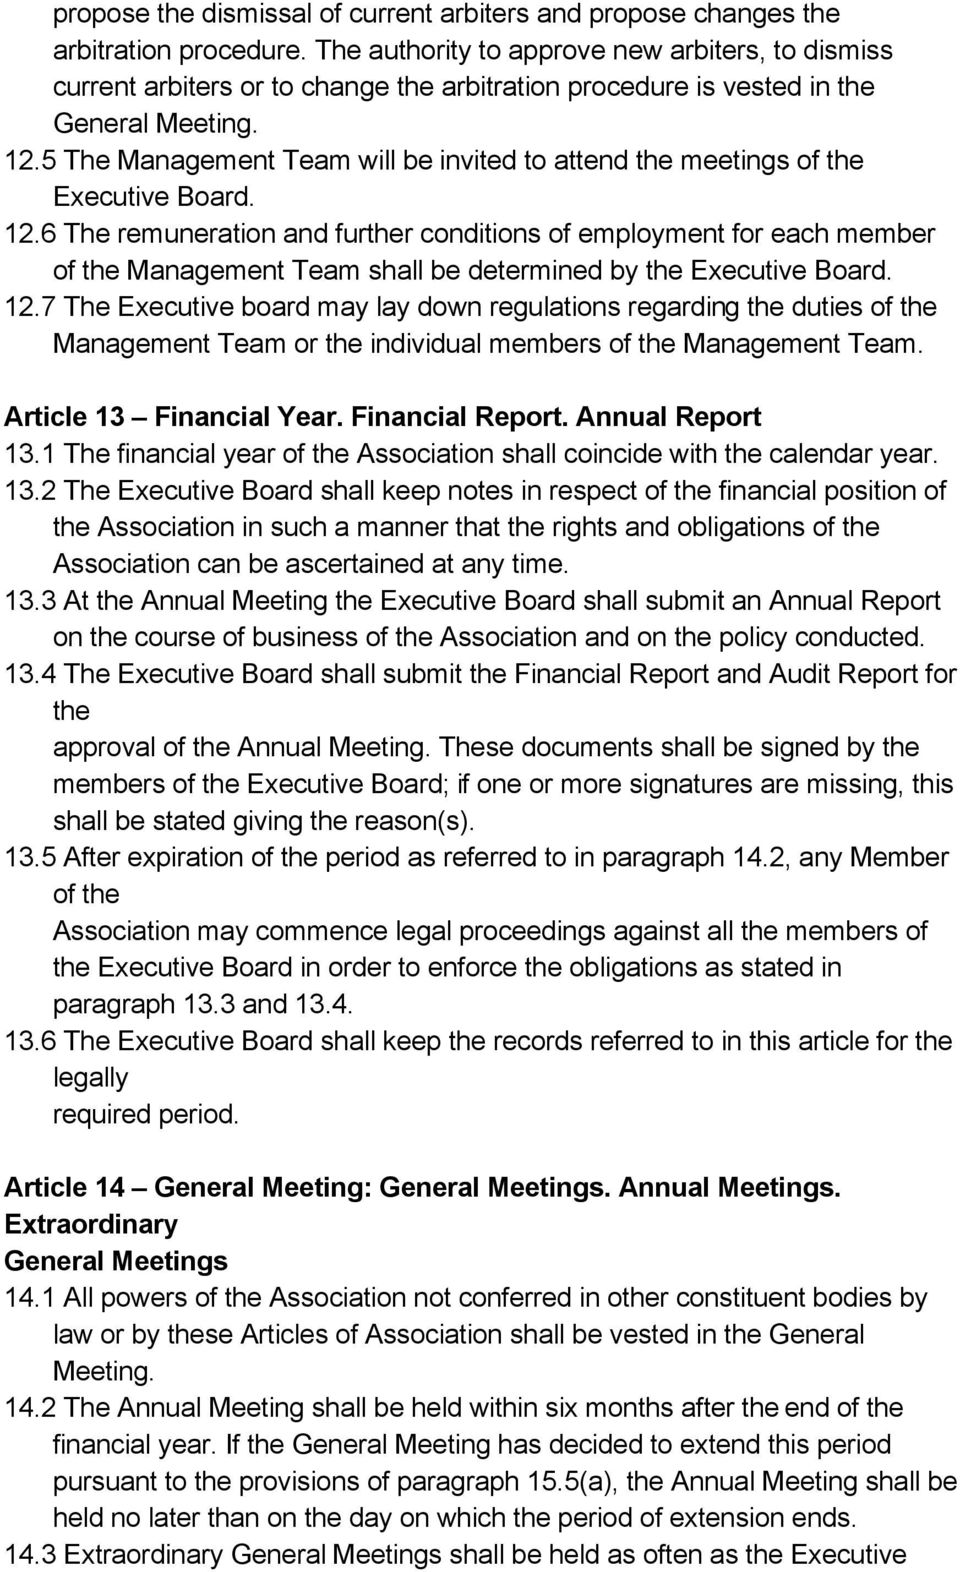 5 The Management Team will be invited to attend the meetings of the Executive Board. 12.